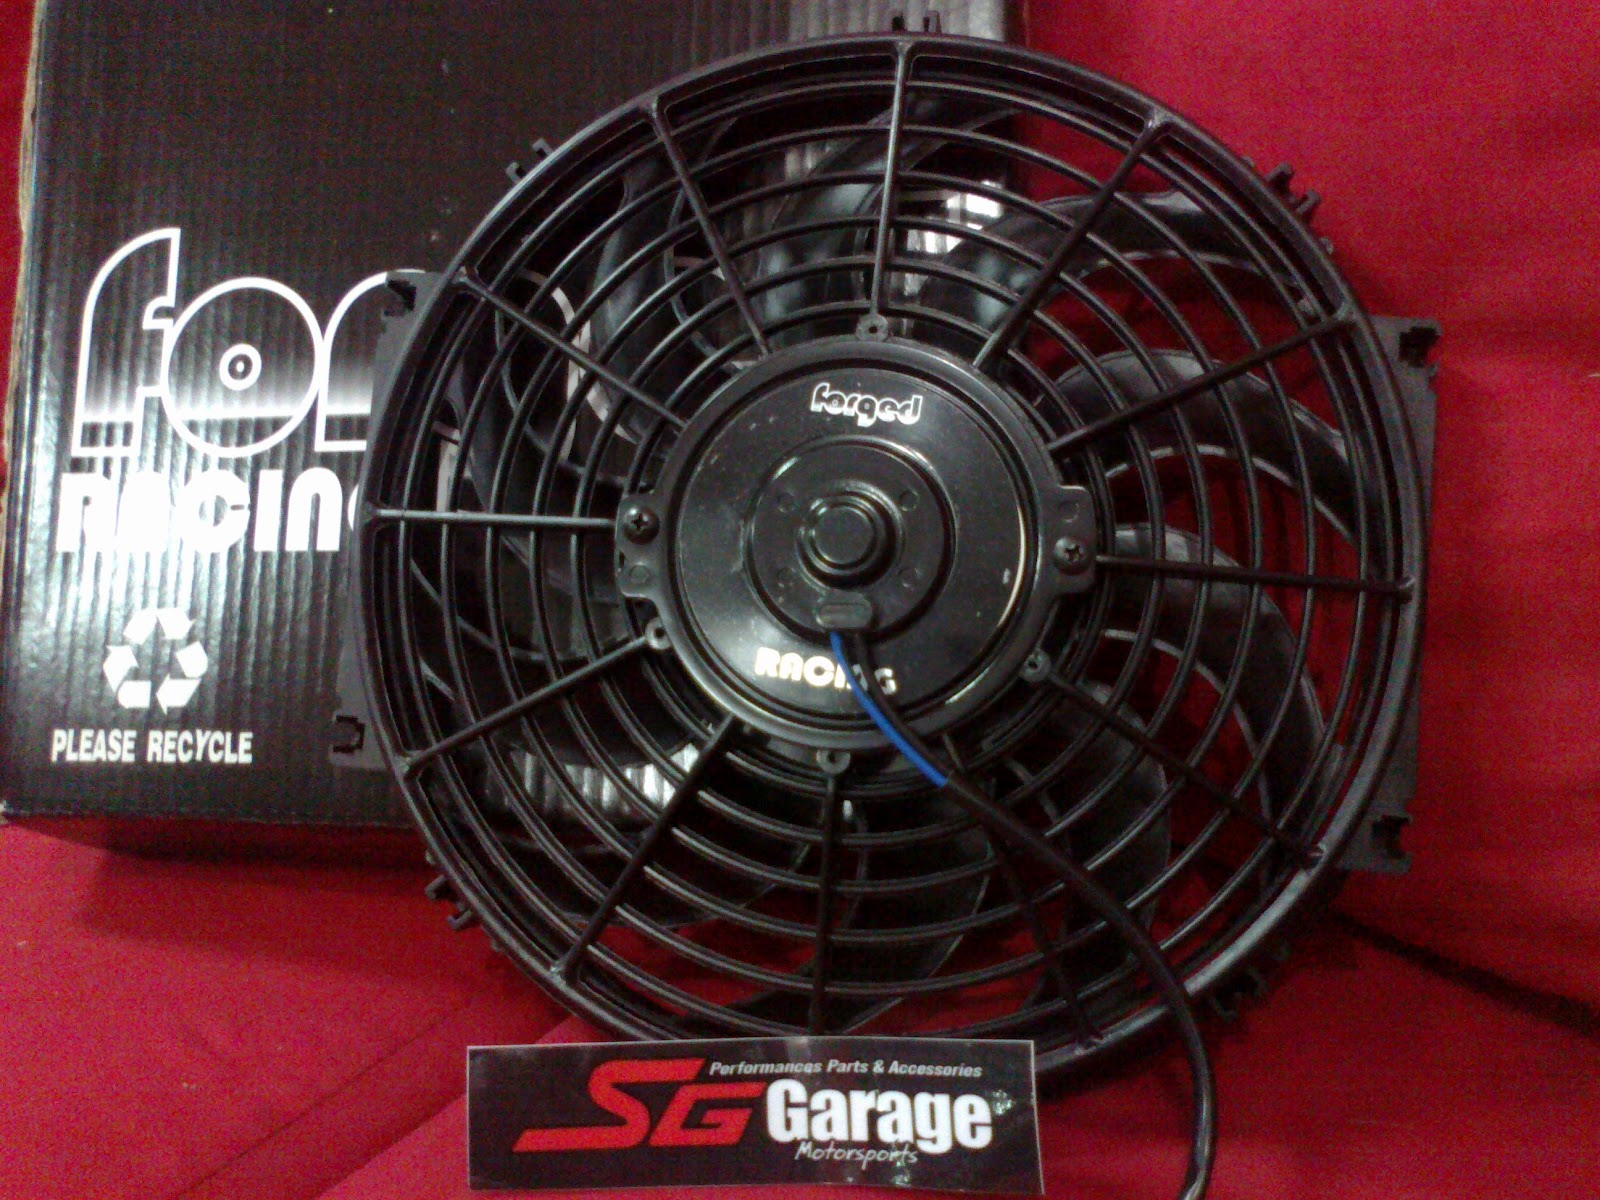 posted 16th march 2012 by sg garage motosport